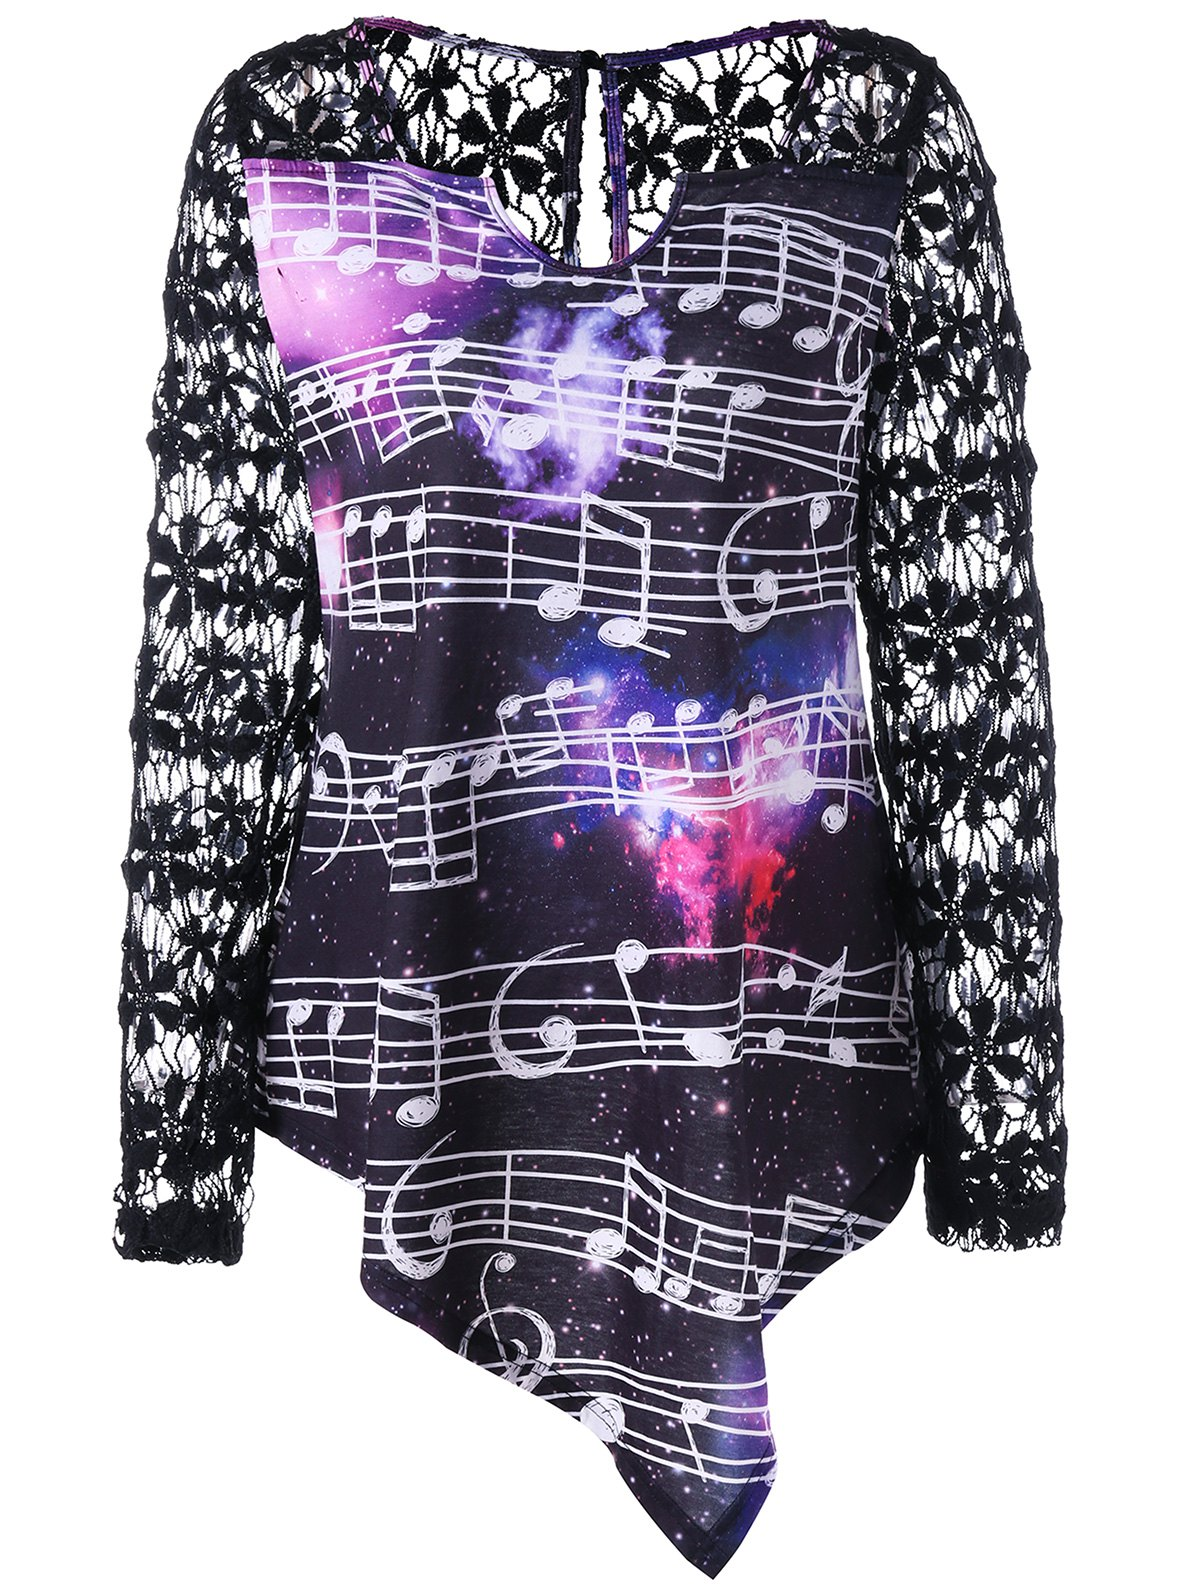 Lace Yoke Galaxy Music Notes TopWOMEN<br><br>Size: L; Color: BLACK; Material: Polyester,Spandex; Shirt Length: Regular; Sleeve Length: Full; Collar: V-Neck; Style: Casual; Embellishment: Lace; Pattern Type: Floral,Galaxy; Season: Fall,Spring; Weight: 0.2500kg; Package Contents: 1 x Top;